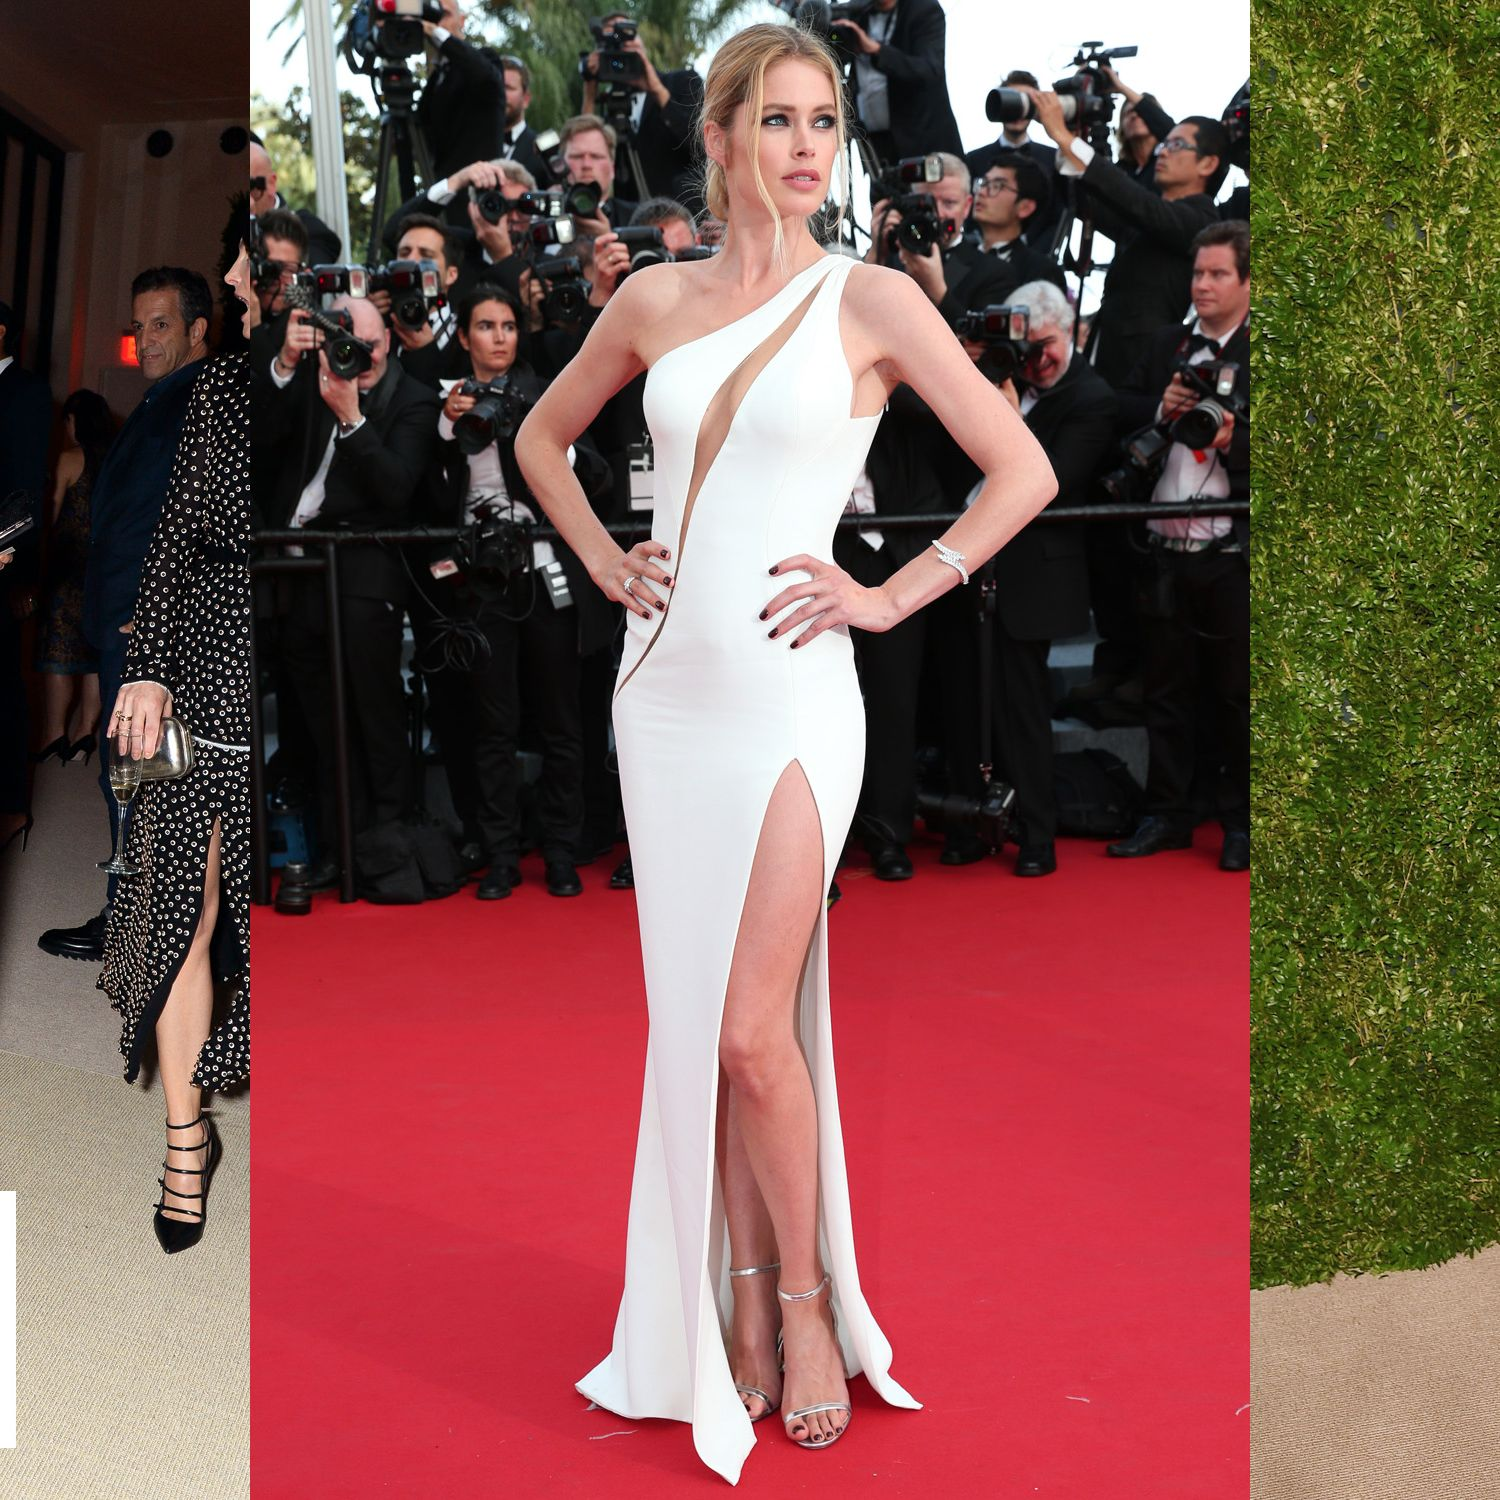 """<strong>The Celebs:</strong> Lauren Santo Domingo, Doutzen Kroes, Lily Aldridge<strong>The Workout:</strong> Ballet<strong>The Body Benefits:</strong> The graceful workout leads to better postural alignment, increased core strength, and lean, willowy limbs.<strong>The Hot Spots:</strong> <a target=""""_blank"""" href=""""https://www.balletbeautiful.com/"""">Ballet Beautiful</a>"""